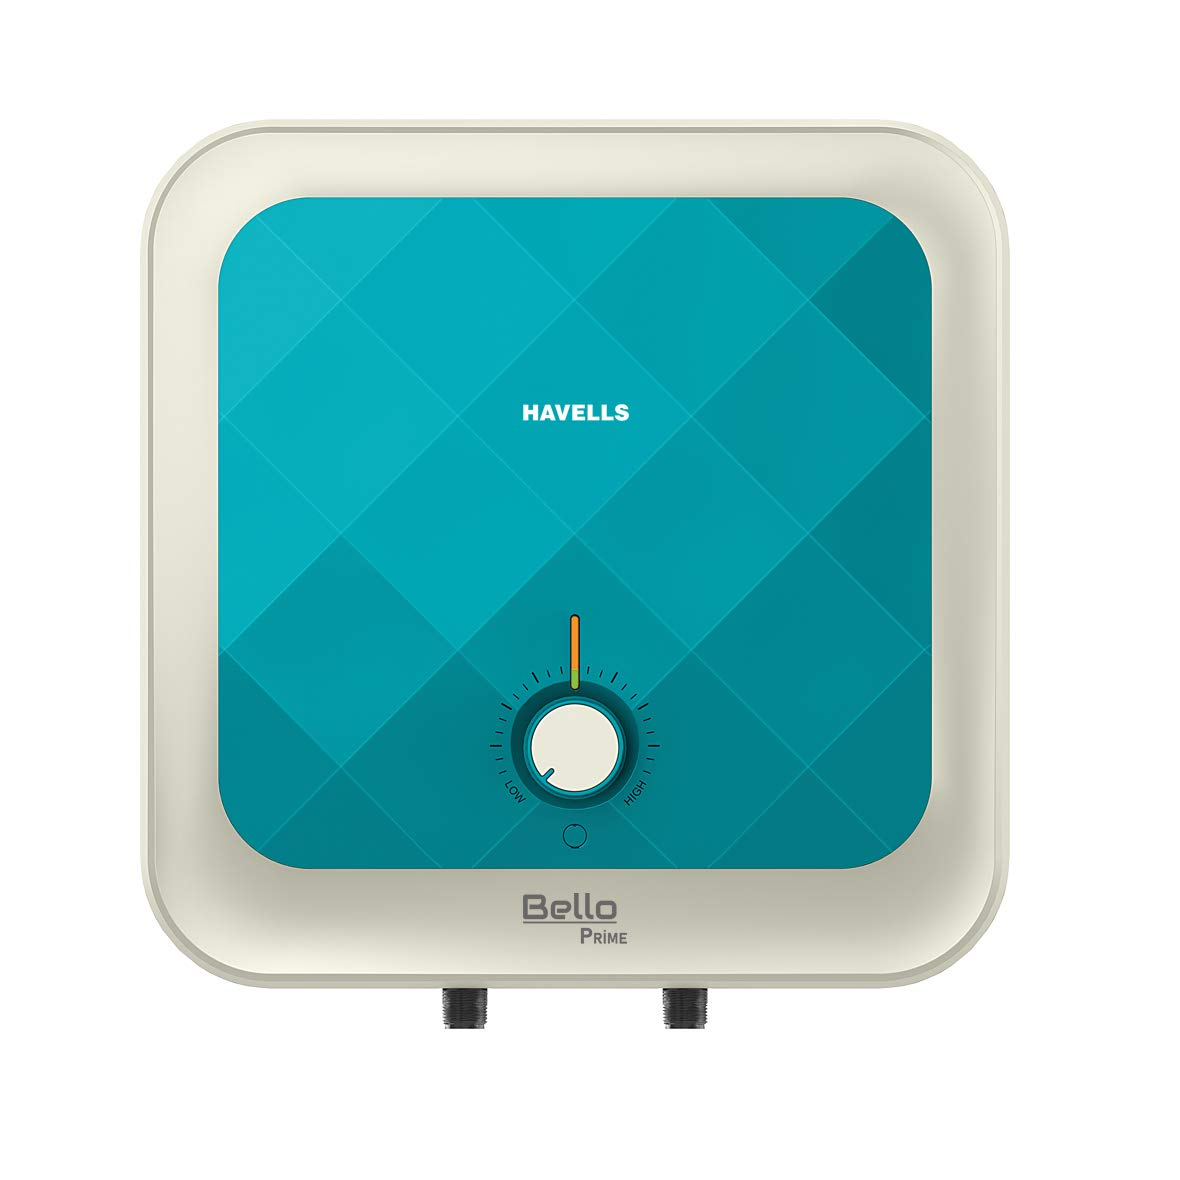 Havells Bello Prime